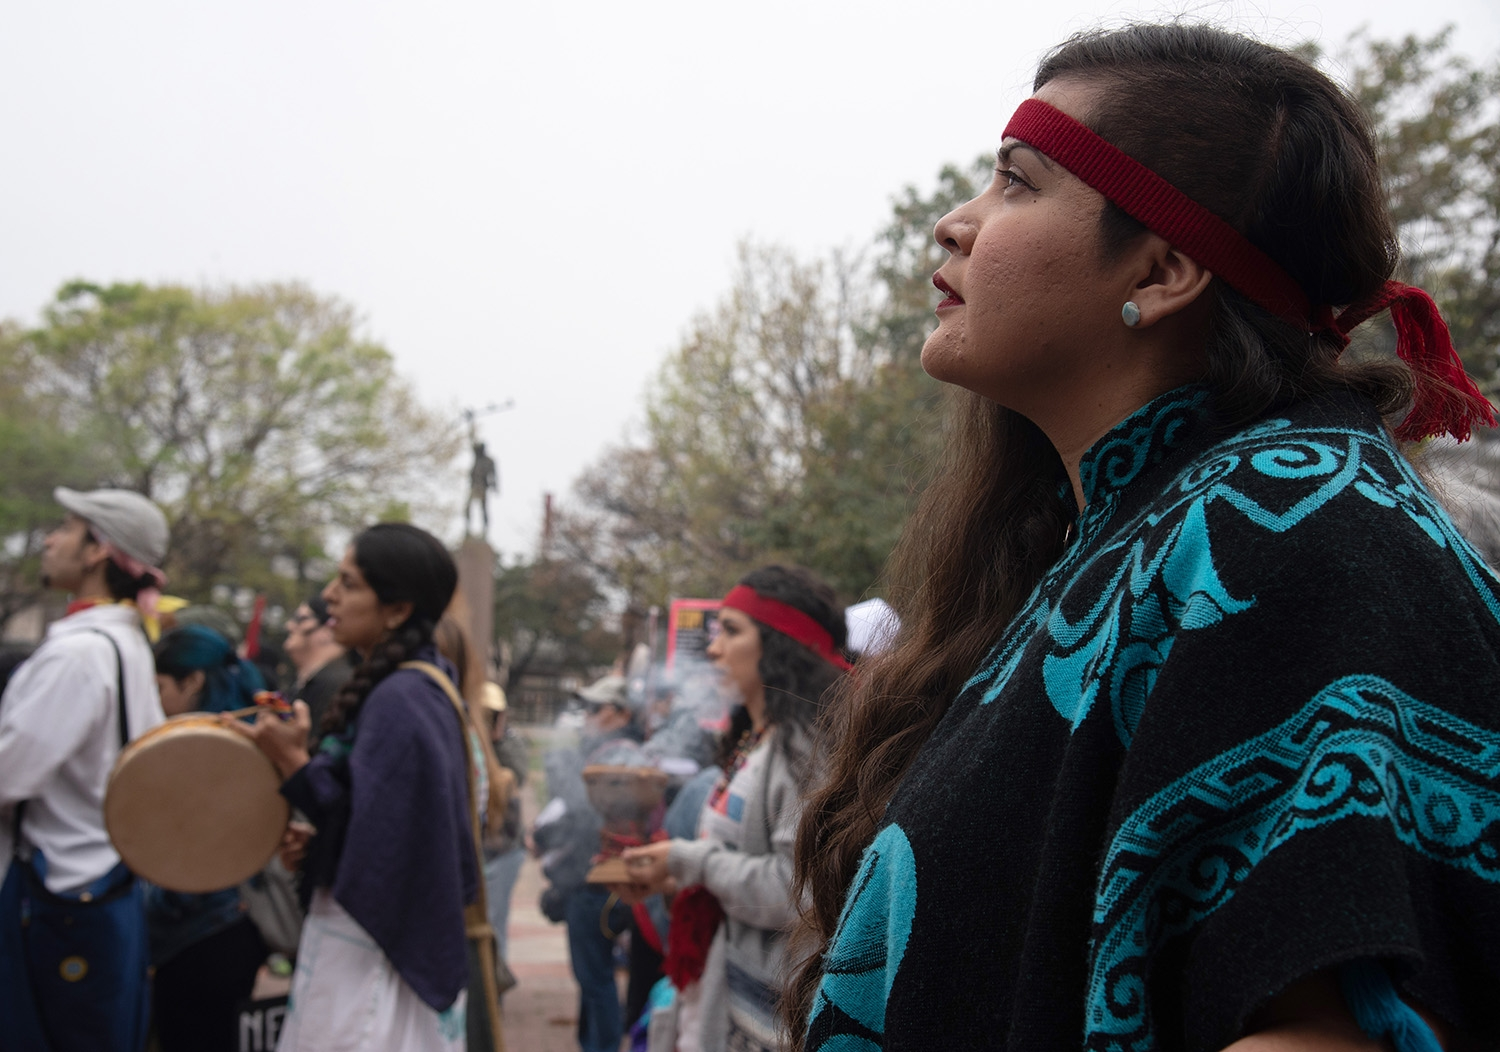 Dr. Susanna Ramirez, member of the Huitzilmeztli Tribe, leads a blessing before the 29th annual San Antonio International Women's Day March in Milam Park on Saturday, March 2. <b><em>Photo by V. Finster | Heron</em></b>